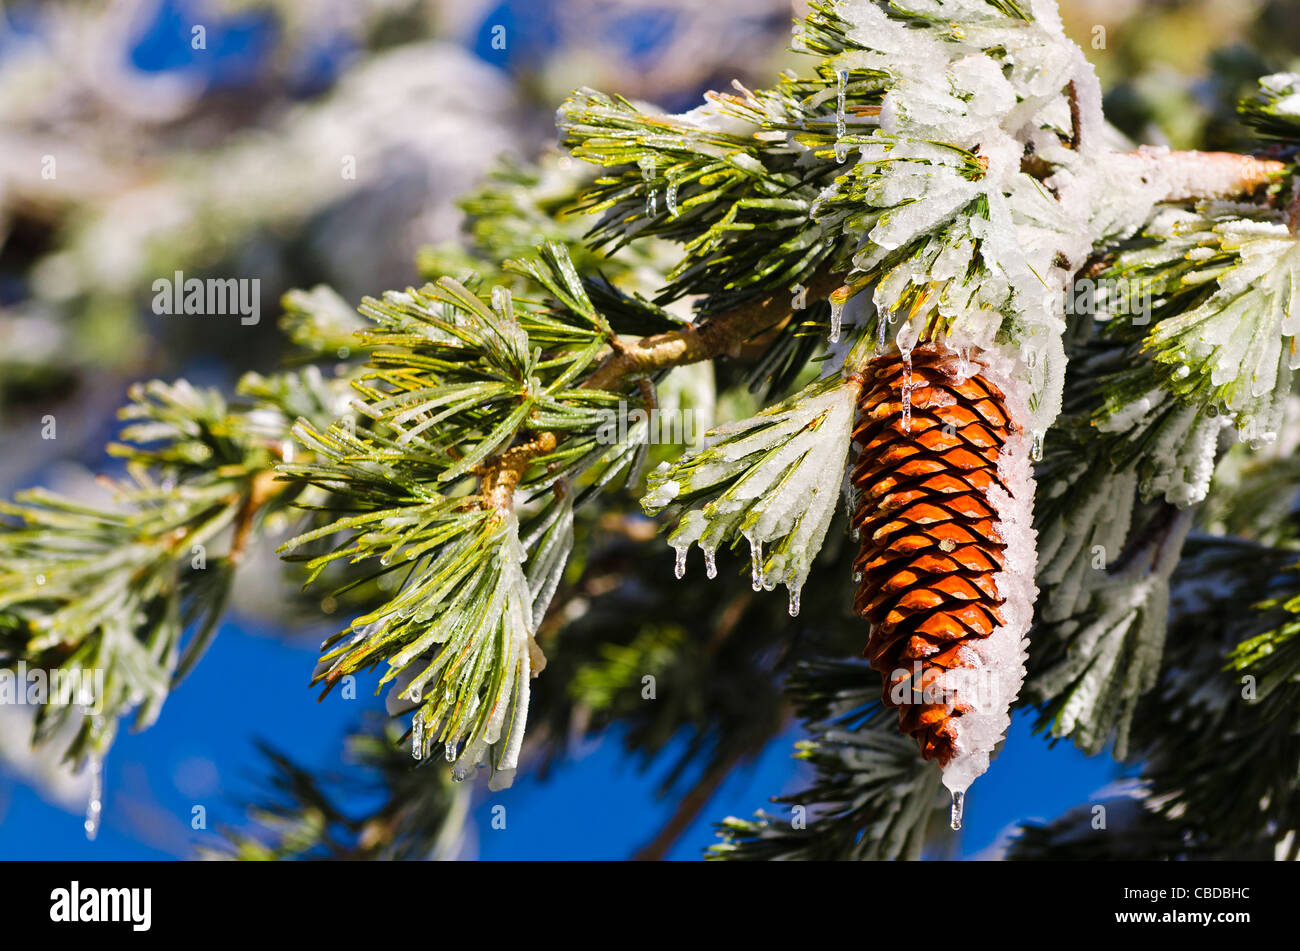 Rime ice on pine cones and branches, San Bernardino National Forest, California USA Stock Photo